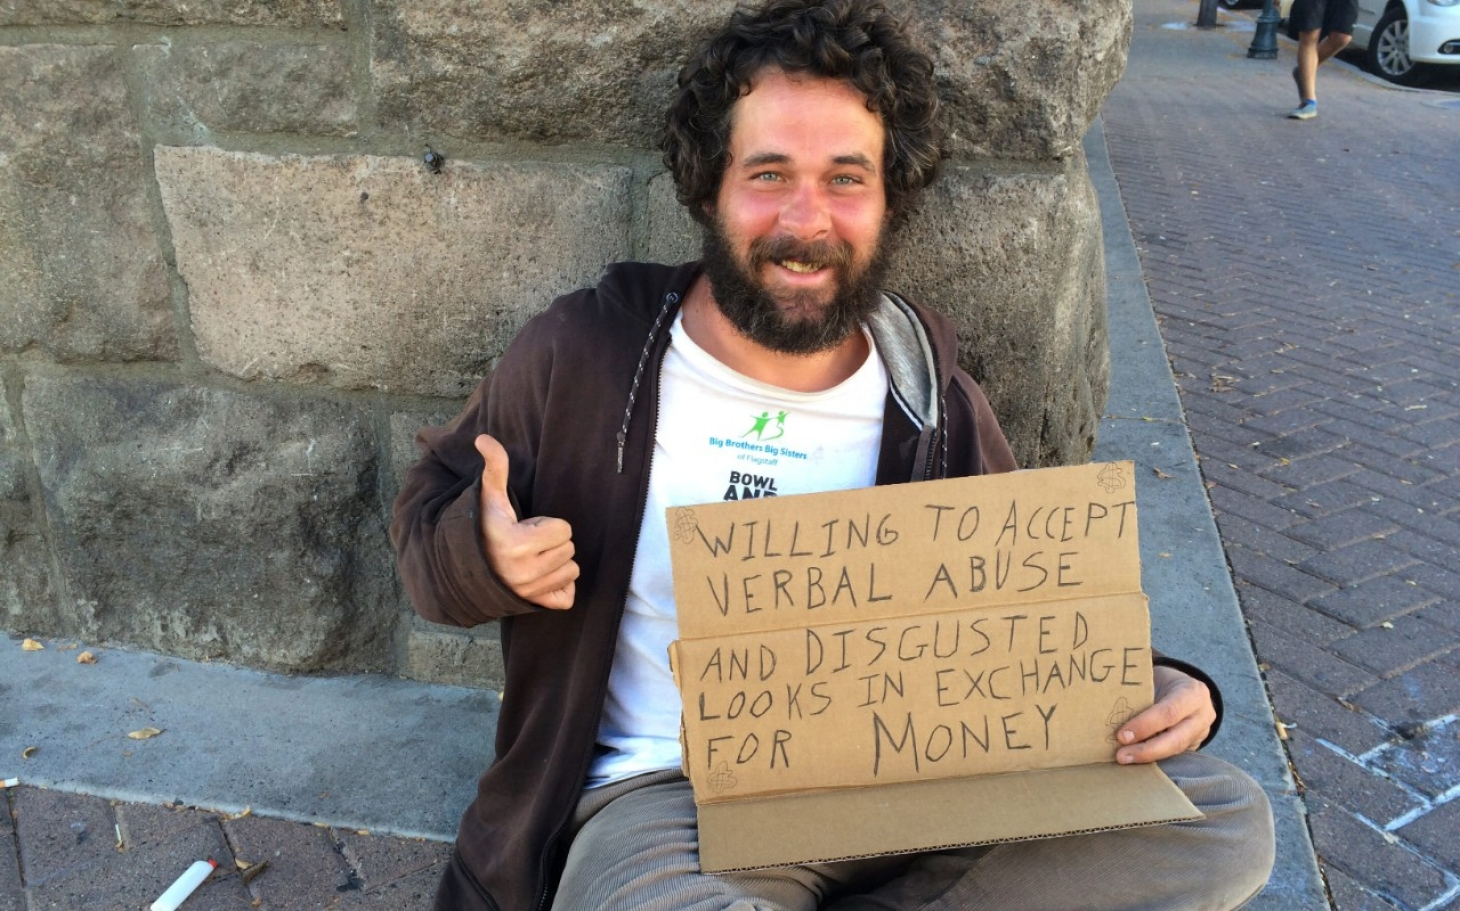 Voucher programs for panhandlers aim for 'real change, not spare change' | Al Jazeera America